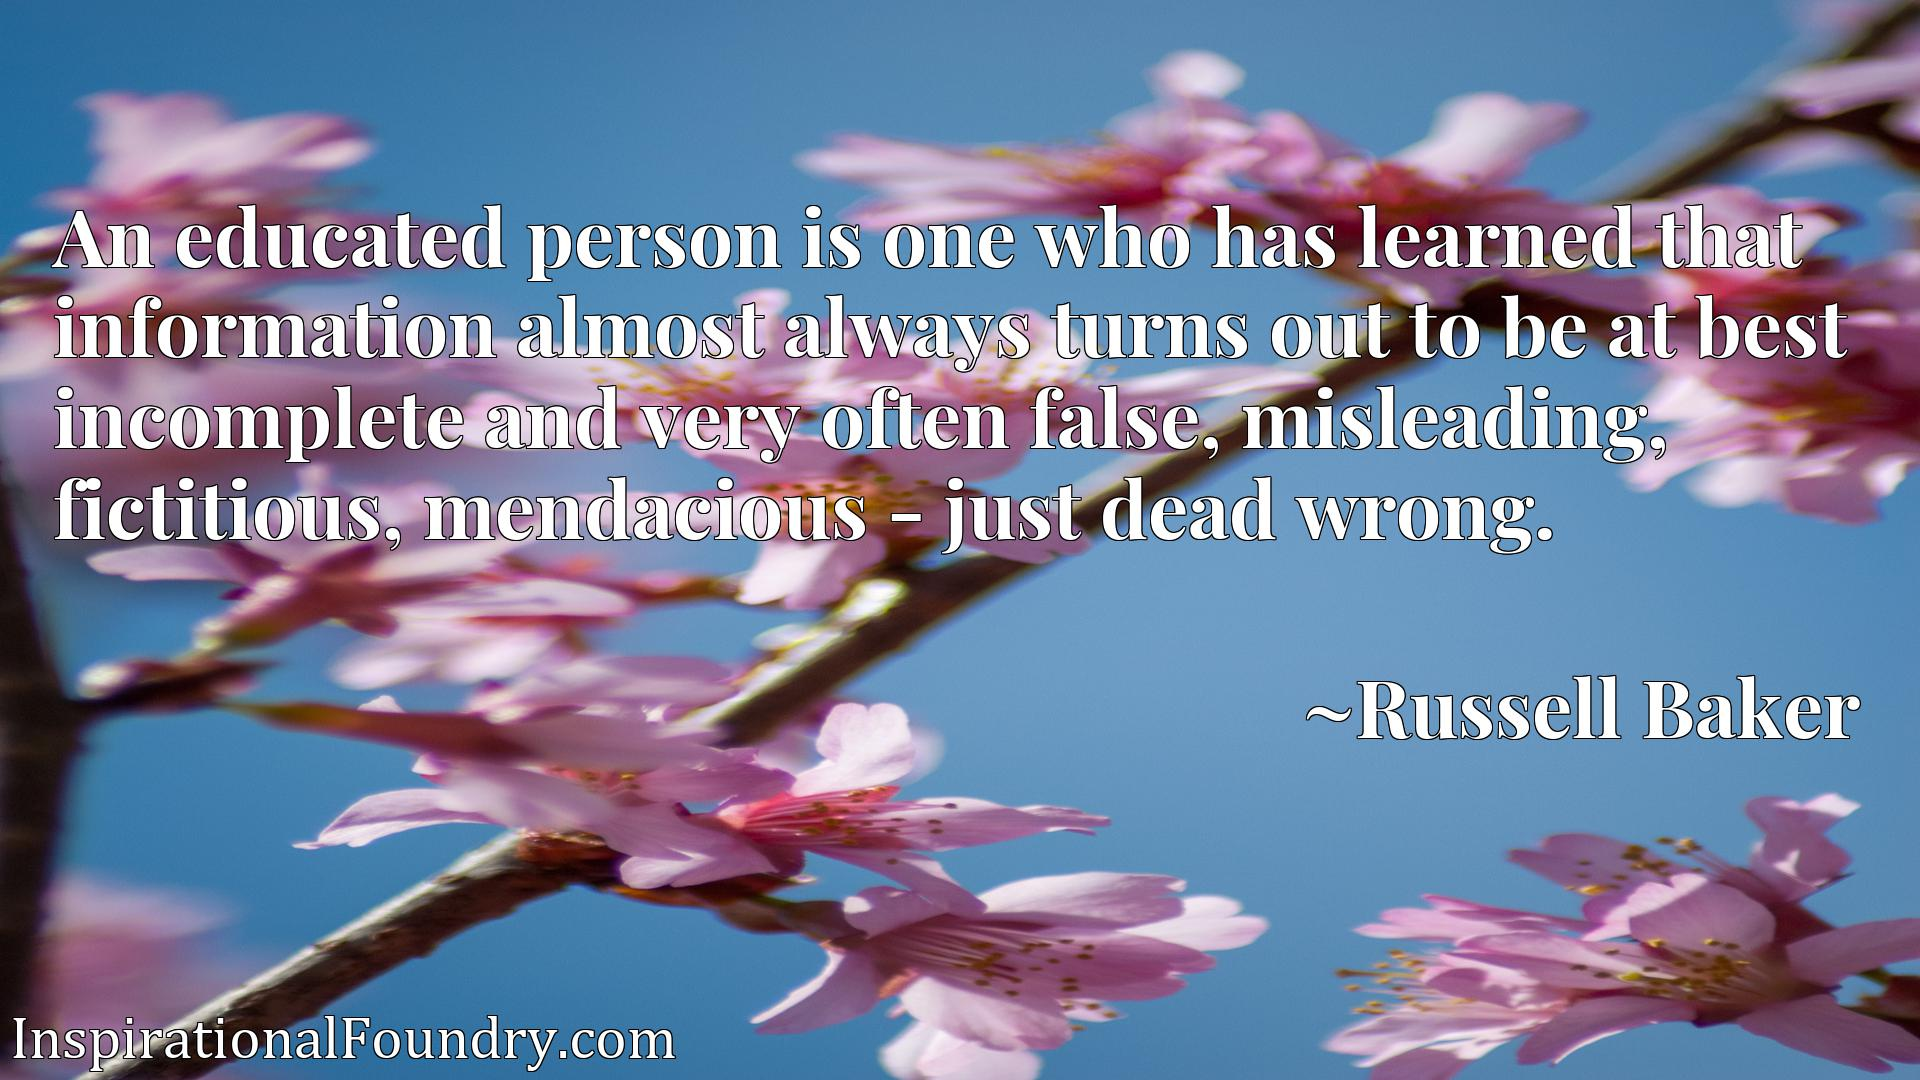 An educated person is one who has learned that information almost always turns out to be at best incomplete and very often false, misleading, fictitious, mendacious - just dead wrong.